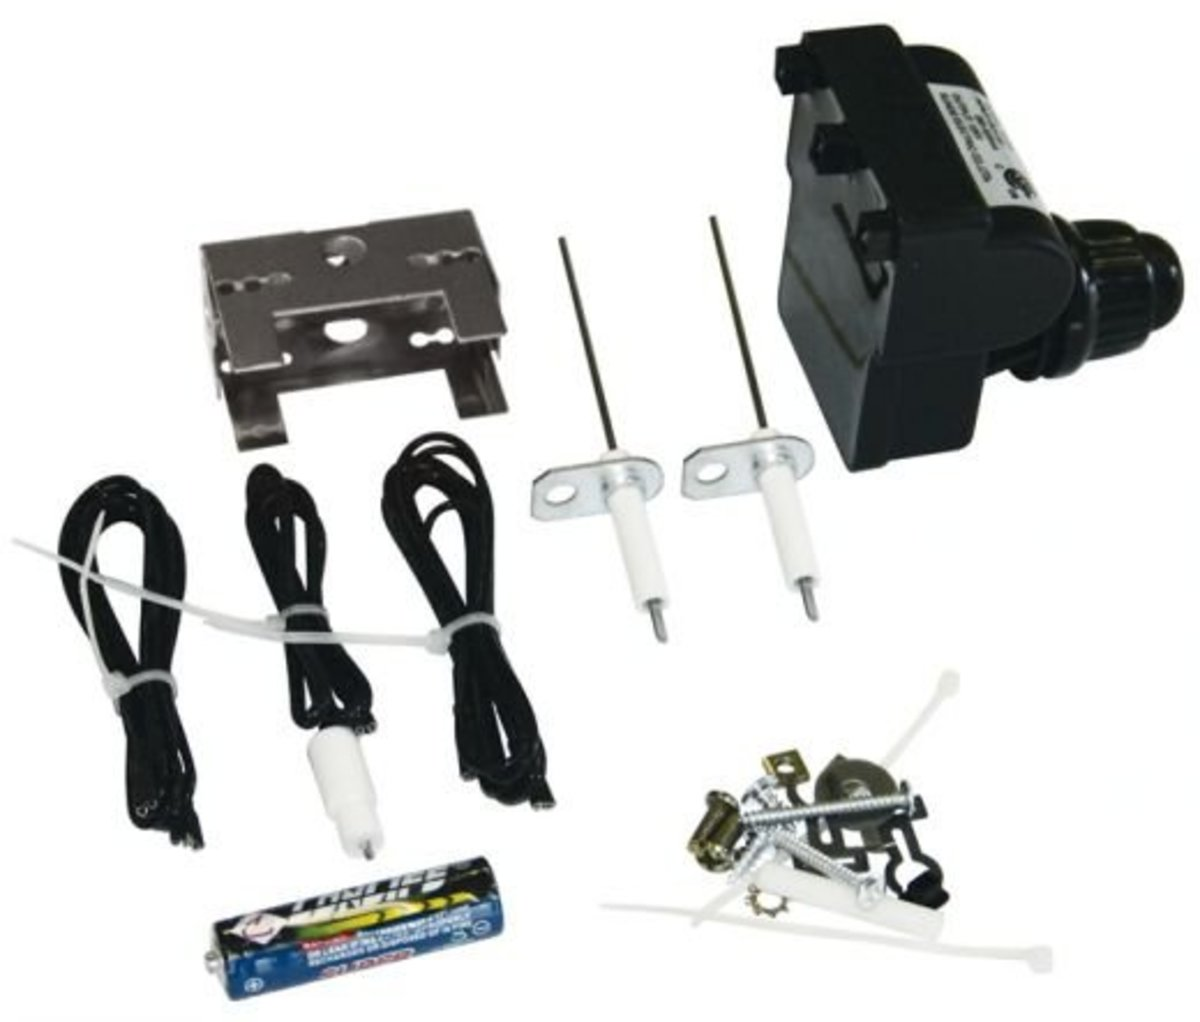 A universal bbq grill ignitor kit contains a battery module, electrode, and wires to start any barbeque and replace the ignitor.